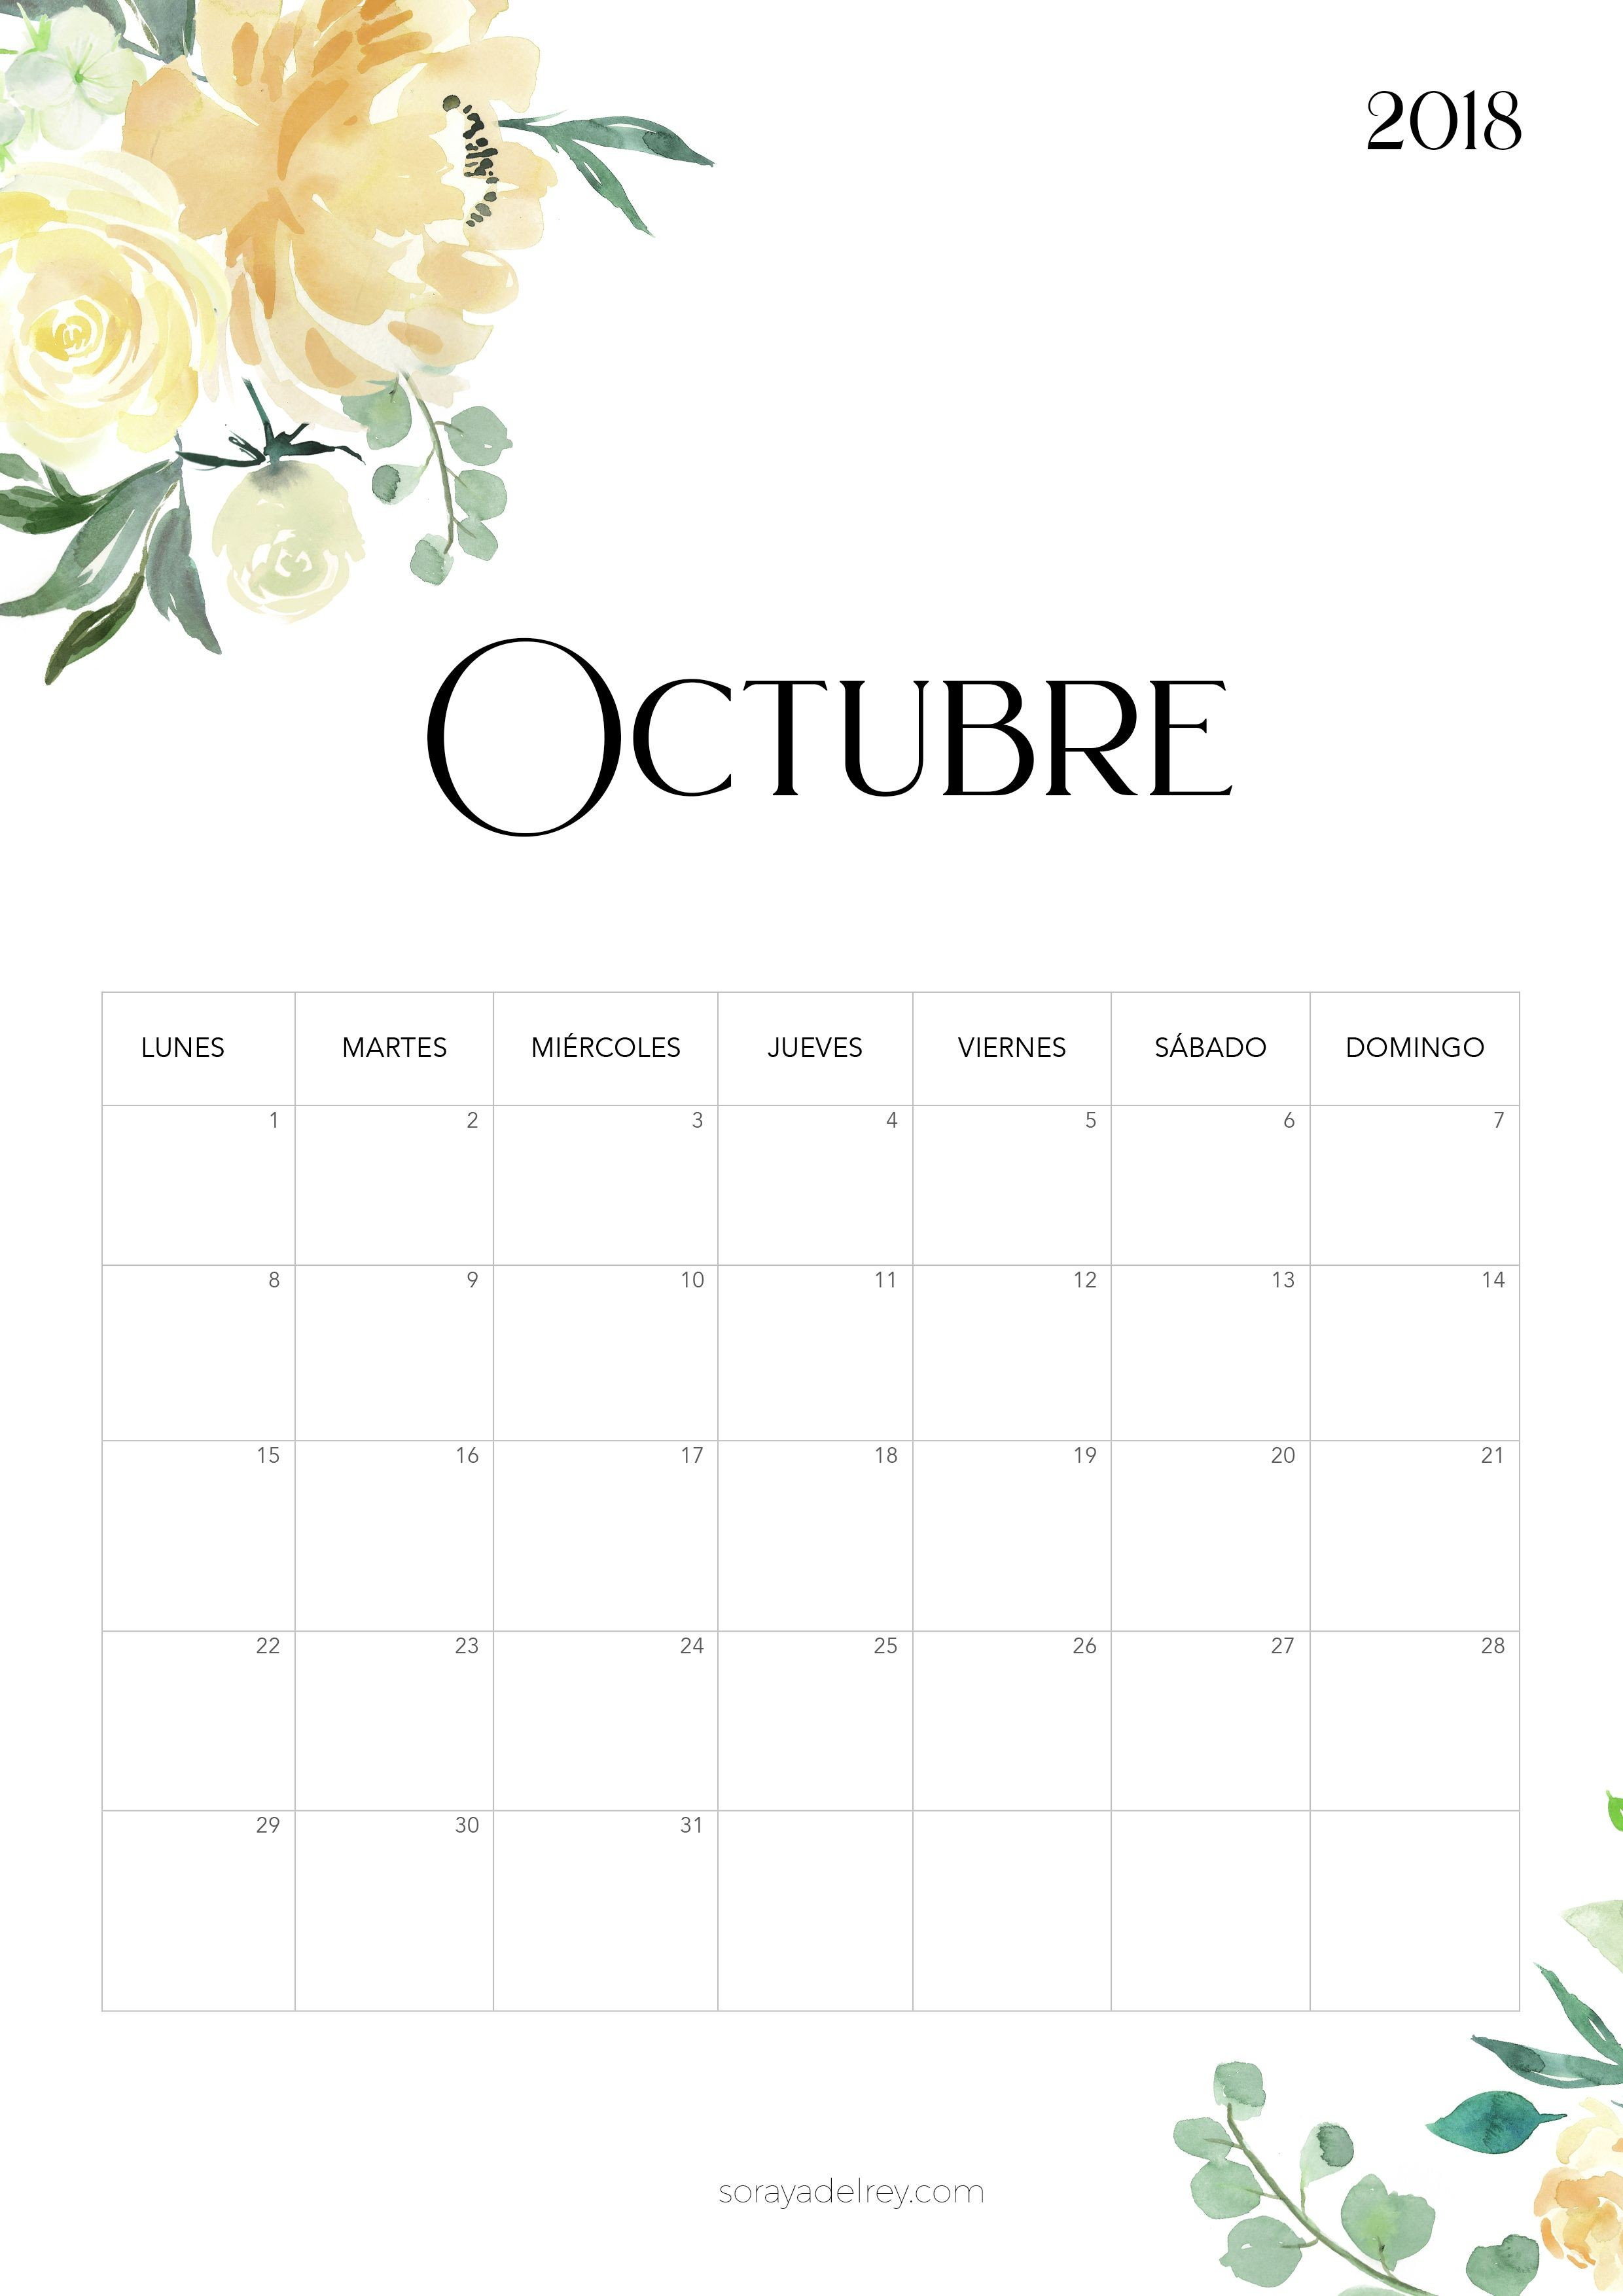 Calendario para imprimir Octubre 2018 calendario calendar octubre october freebie printable imprimir